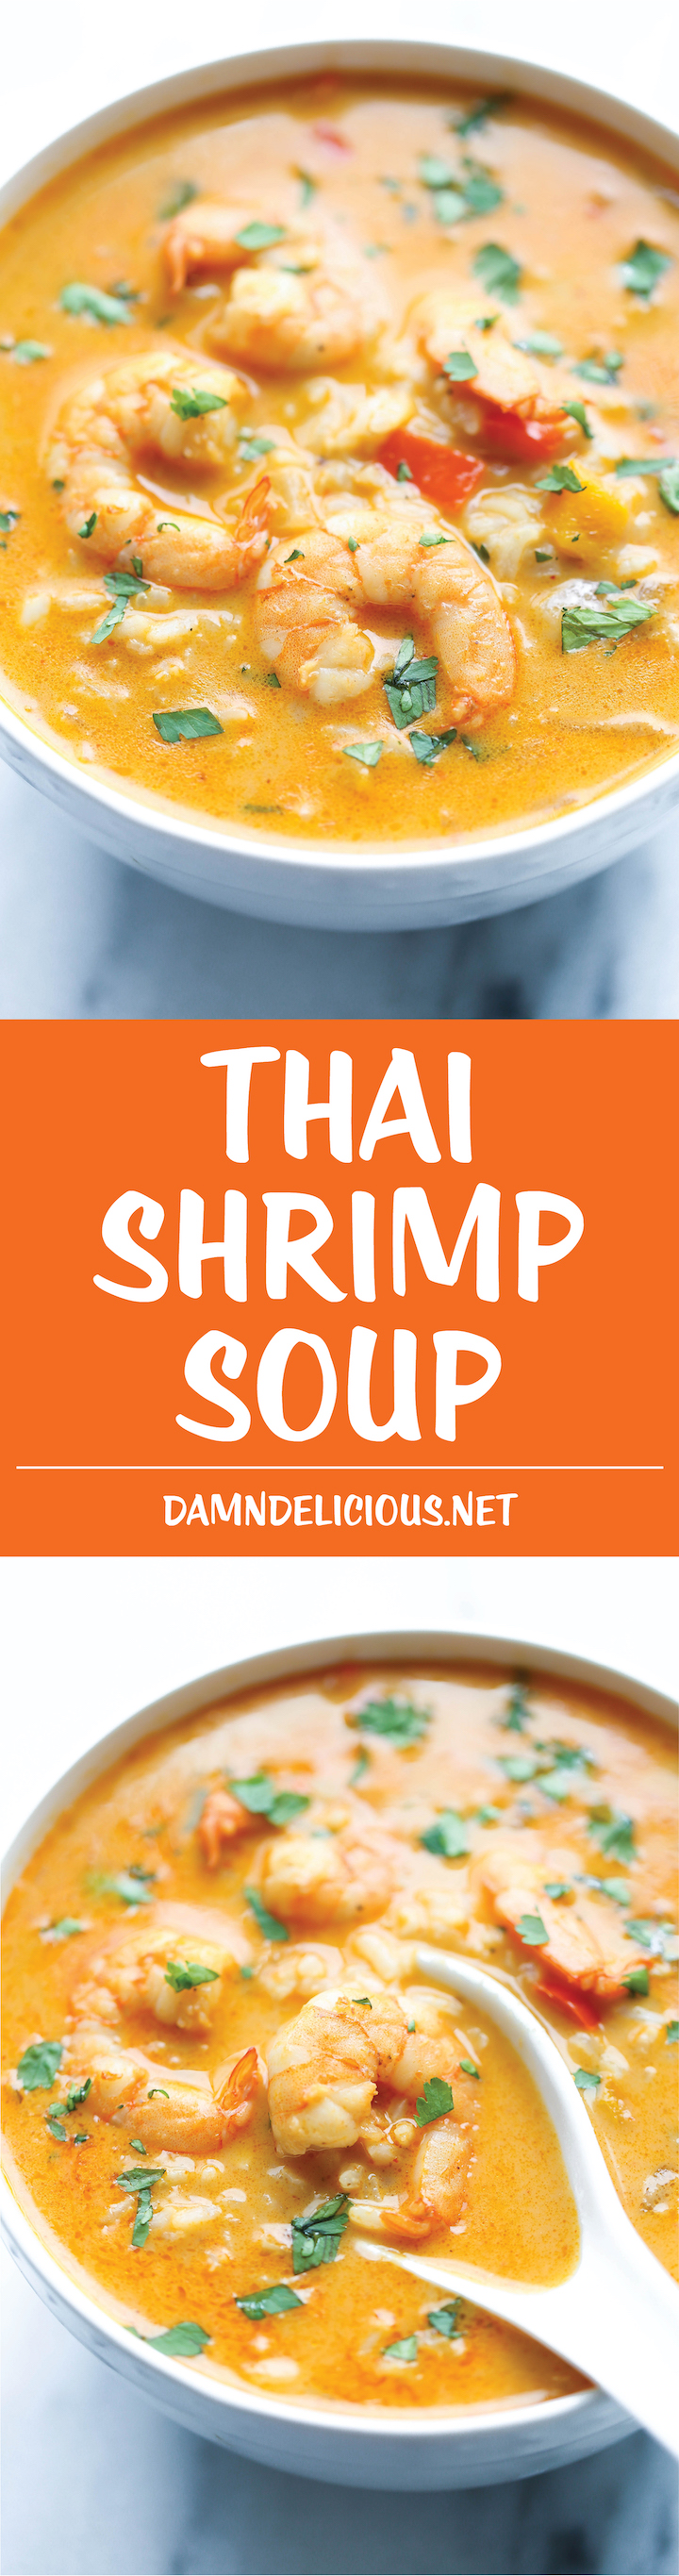 Thai Shrimp Soup - Skip the take-out and try making this at home – it's unbelievably easy and 10000x tastier and healthier!